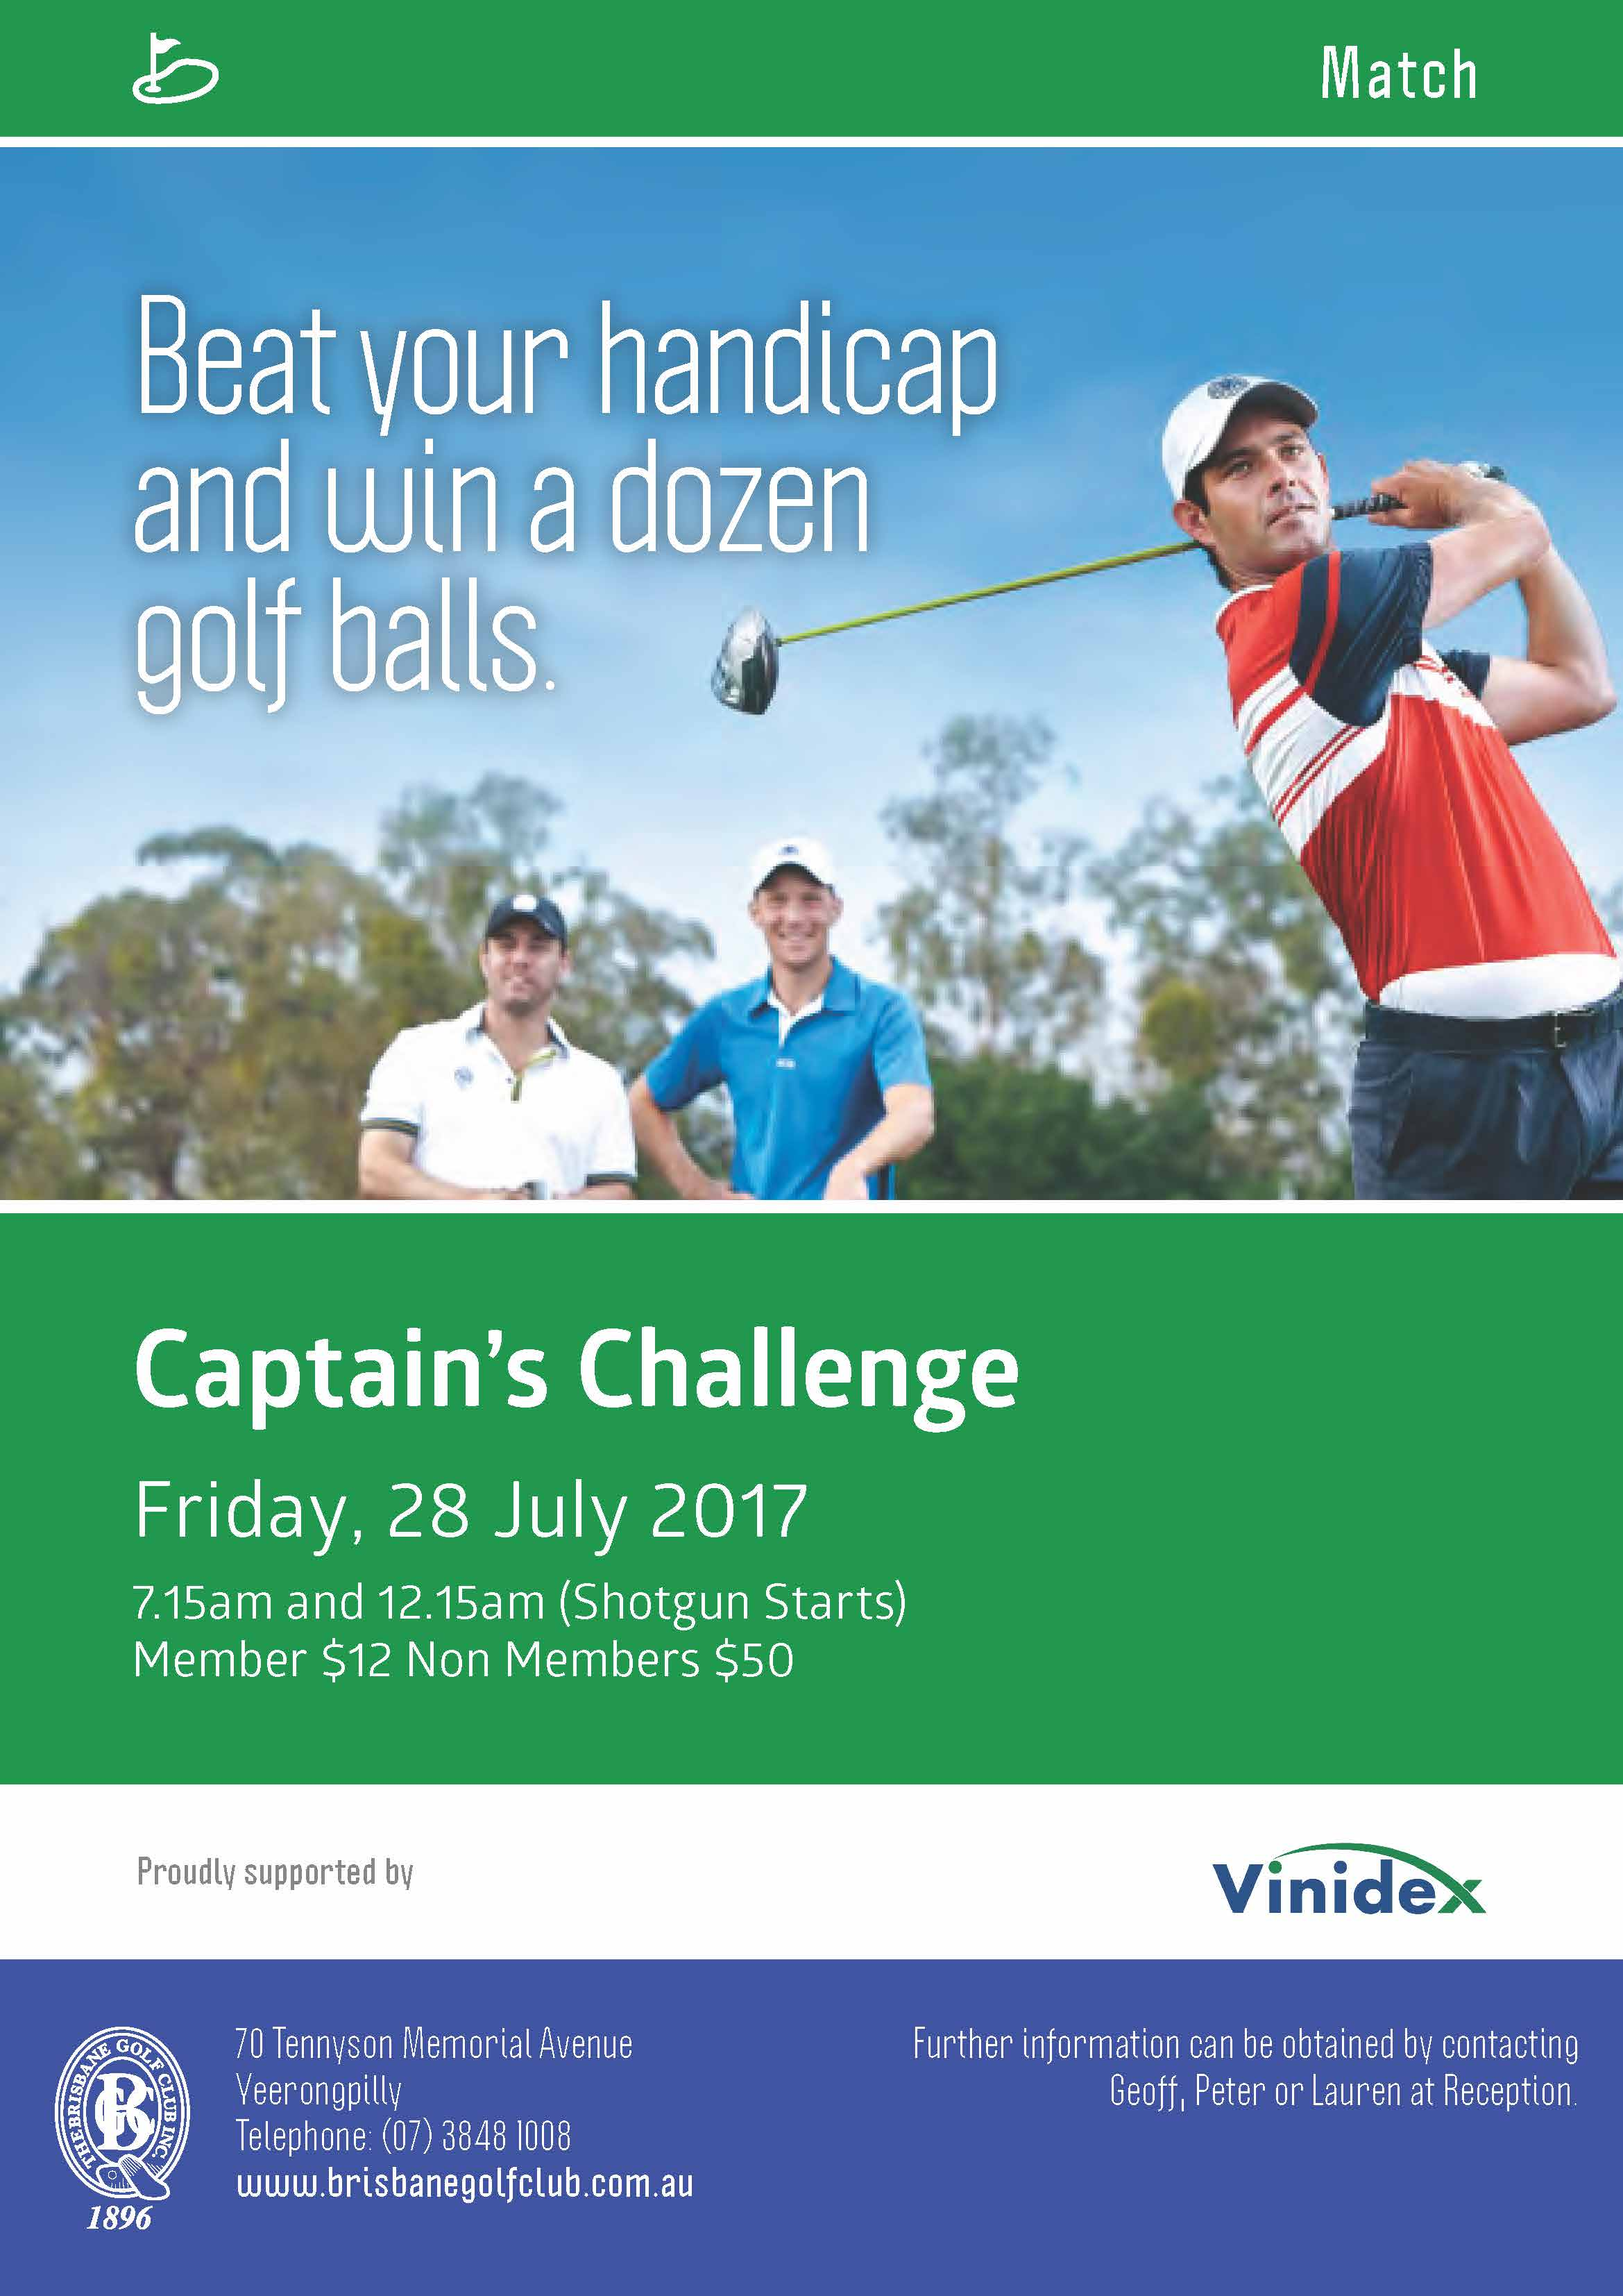 Course Open €� Practice Facilities And Driving Range Open